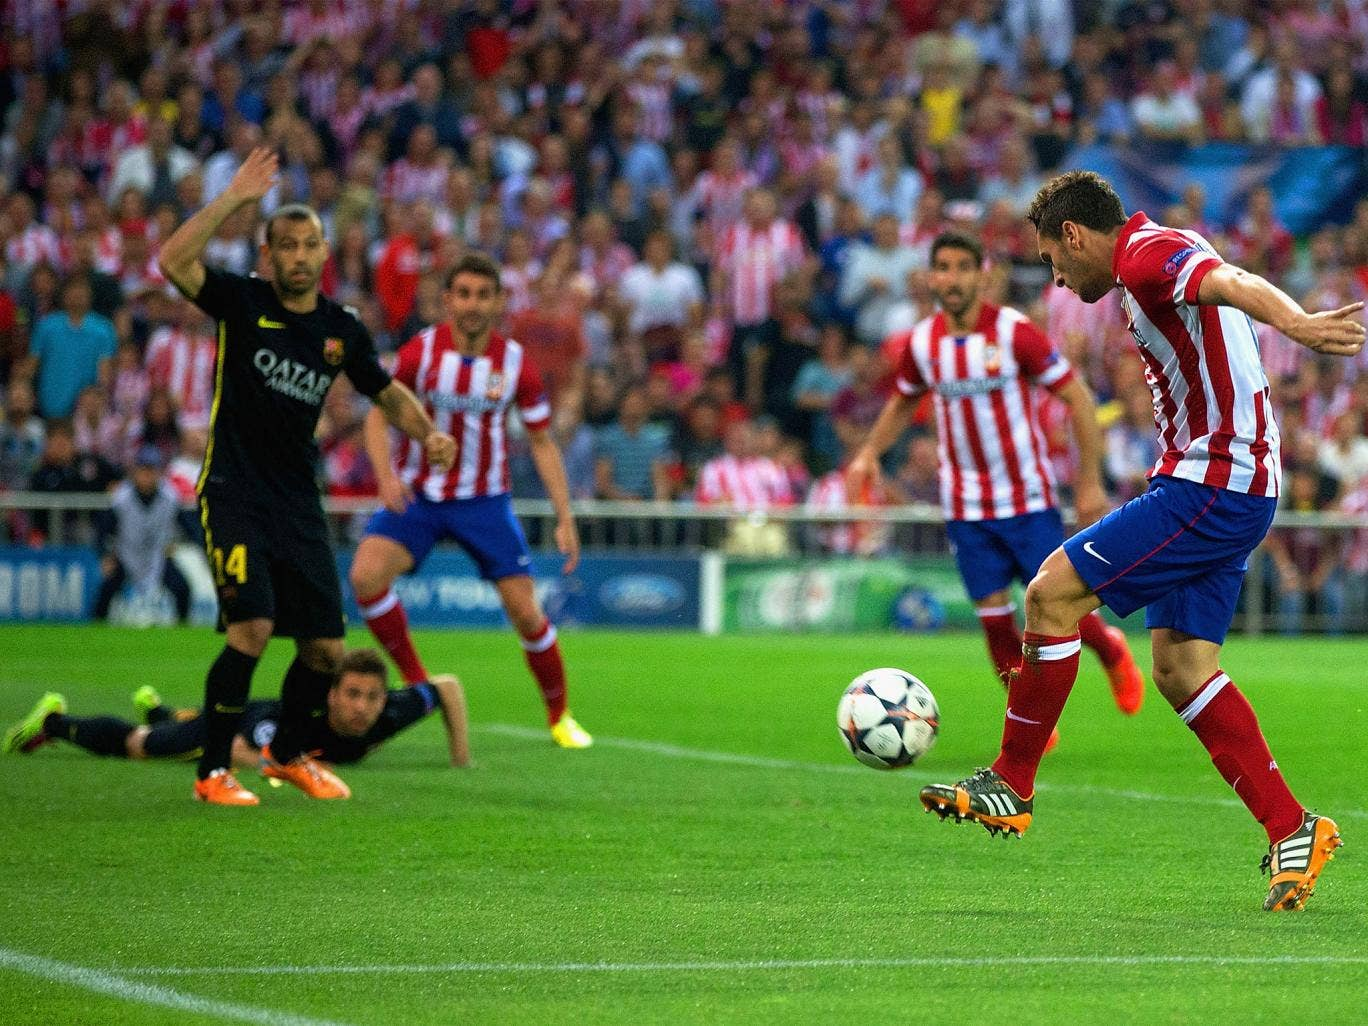 Koke arrives at the far post to give Atletico the lead